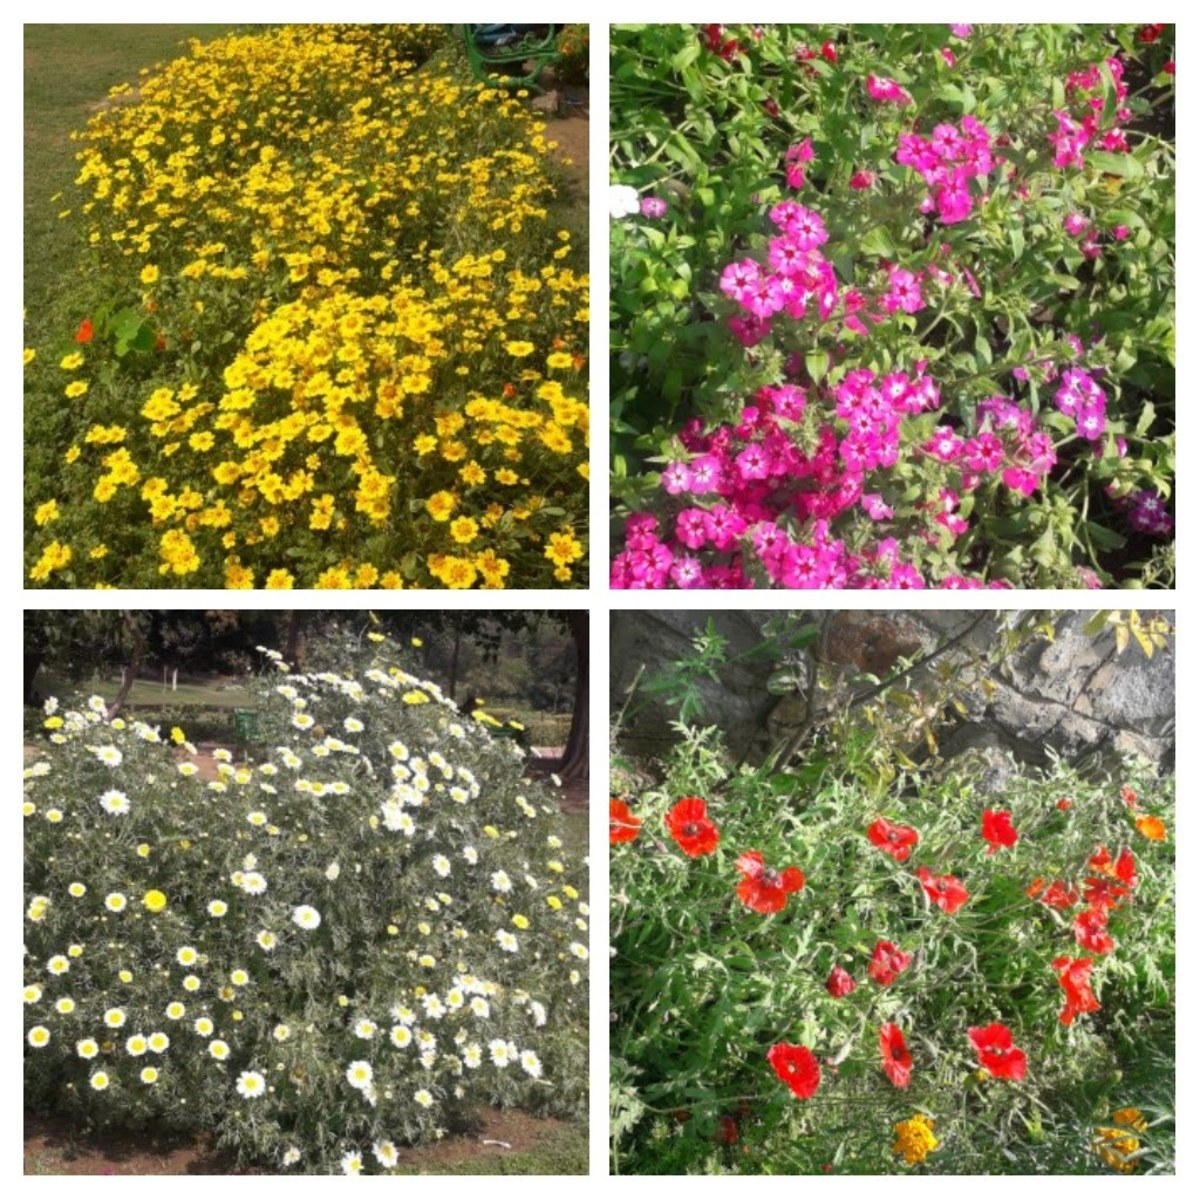 Lovely and colourful flowers in the Lodhi Garden